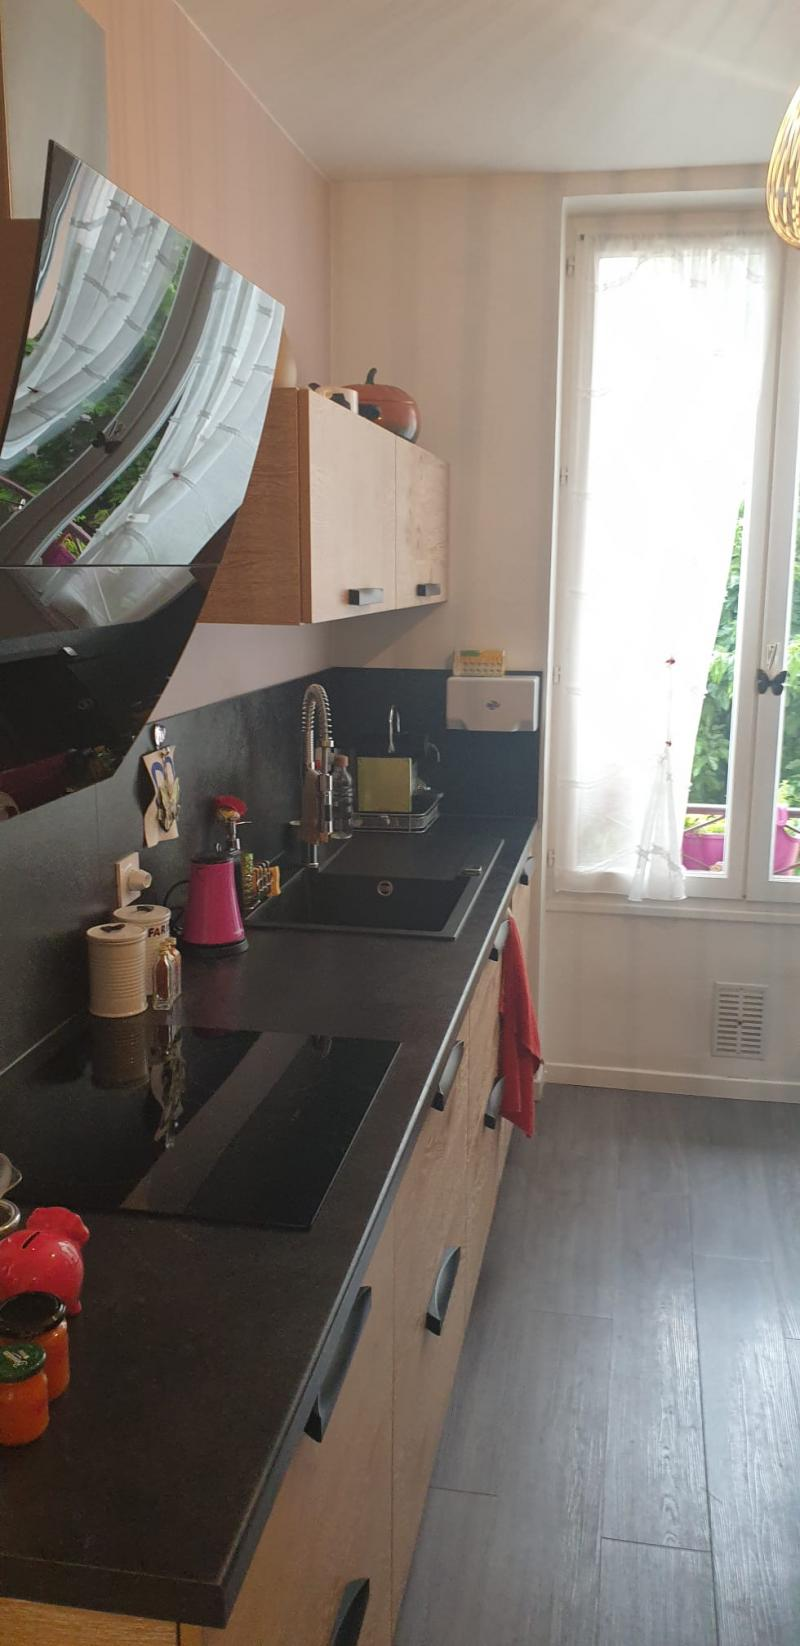 Image_8, Appartement, Annemasse, ref :VA0003173